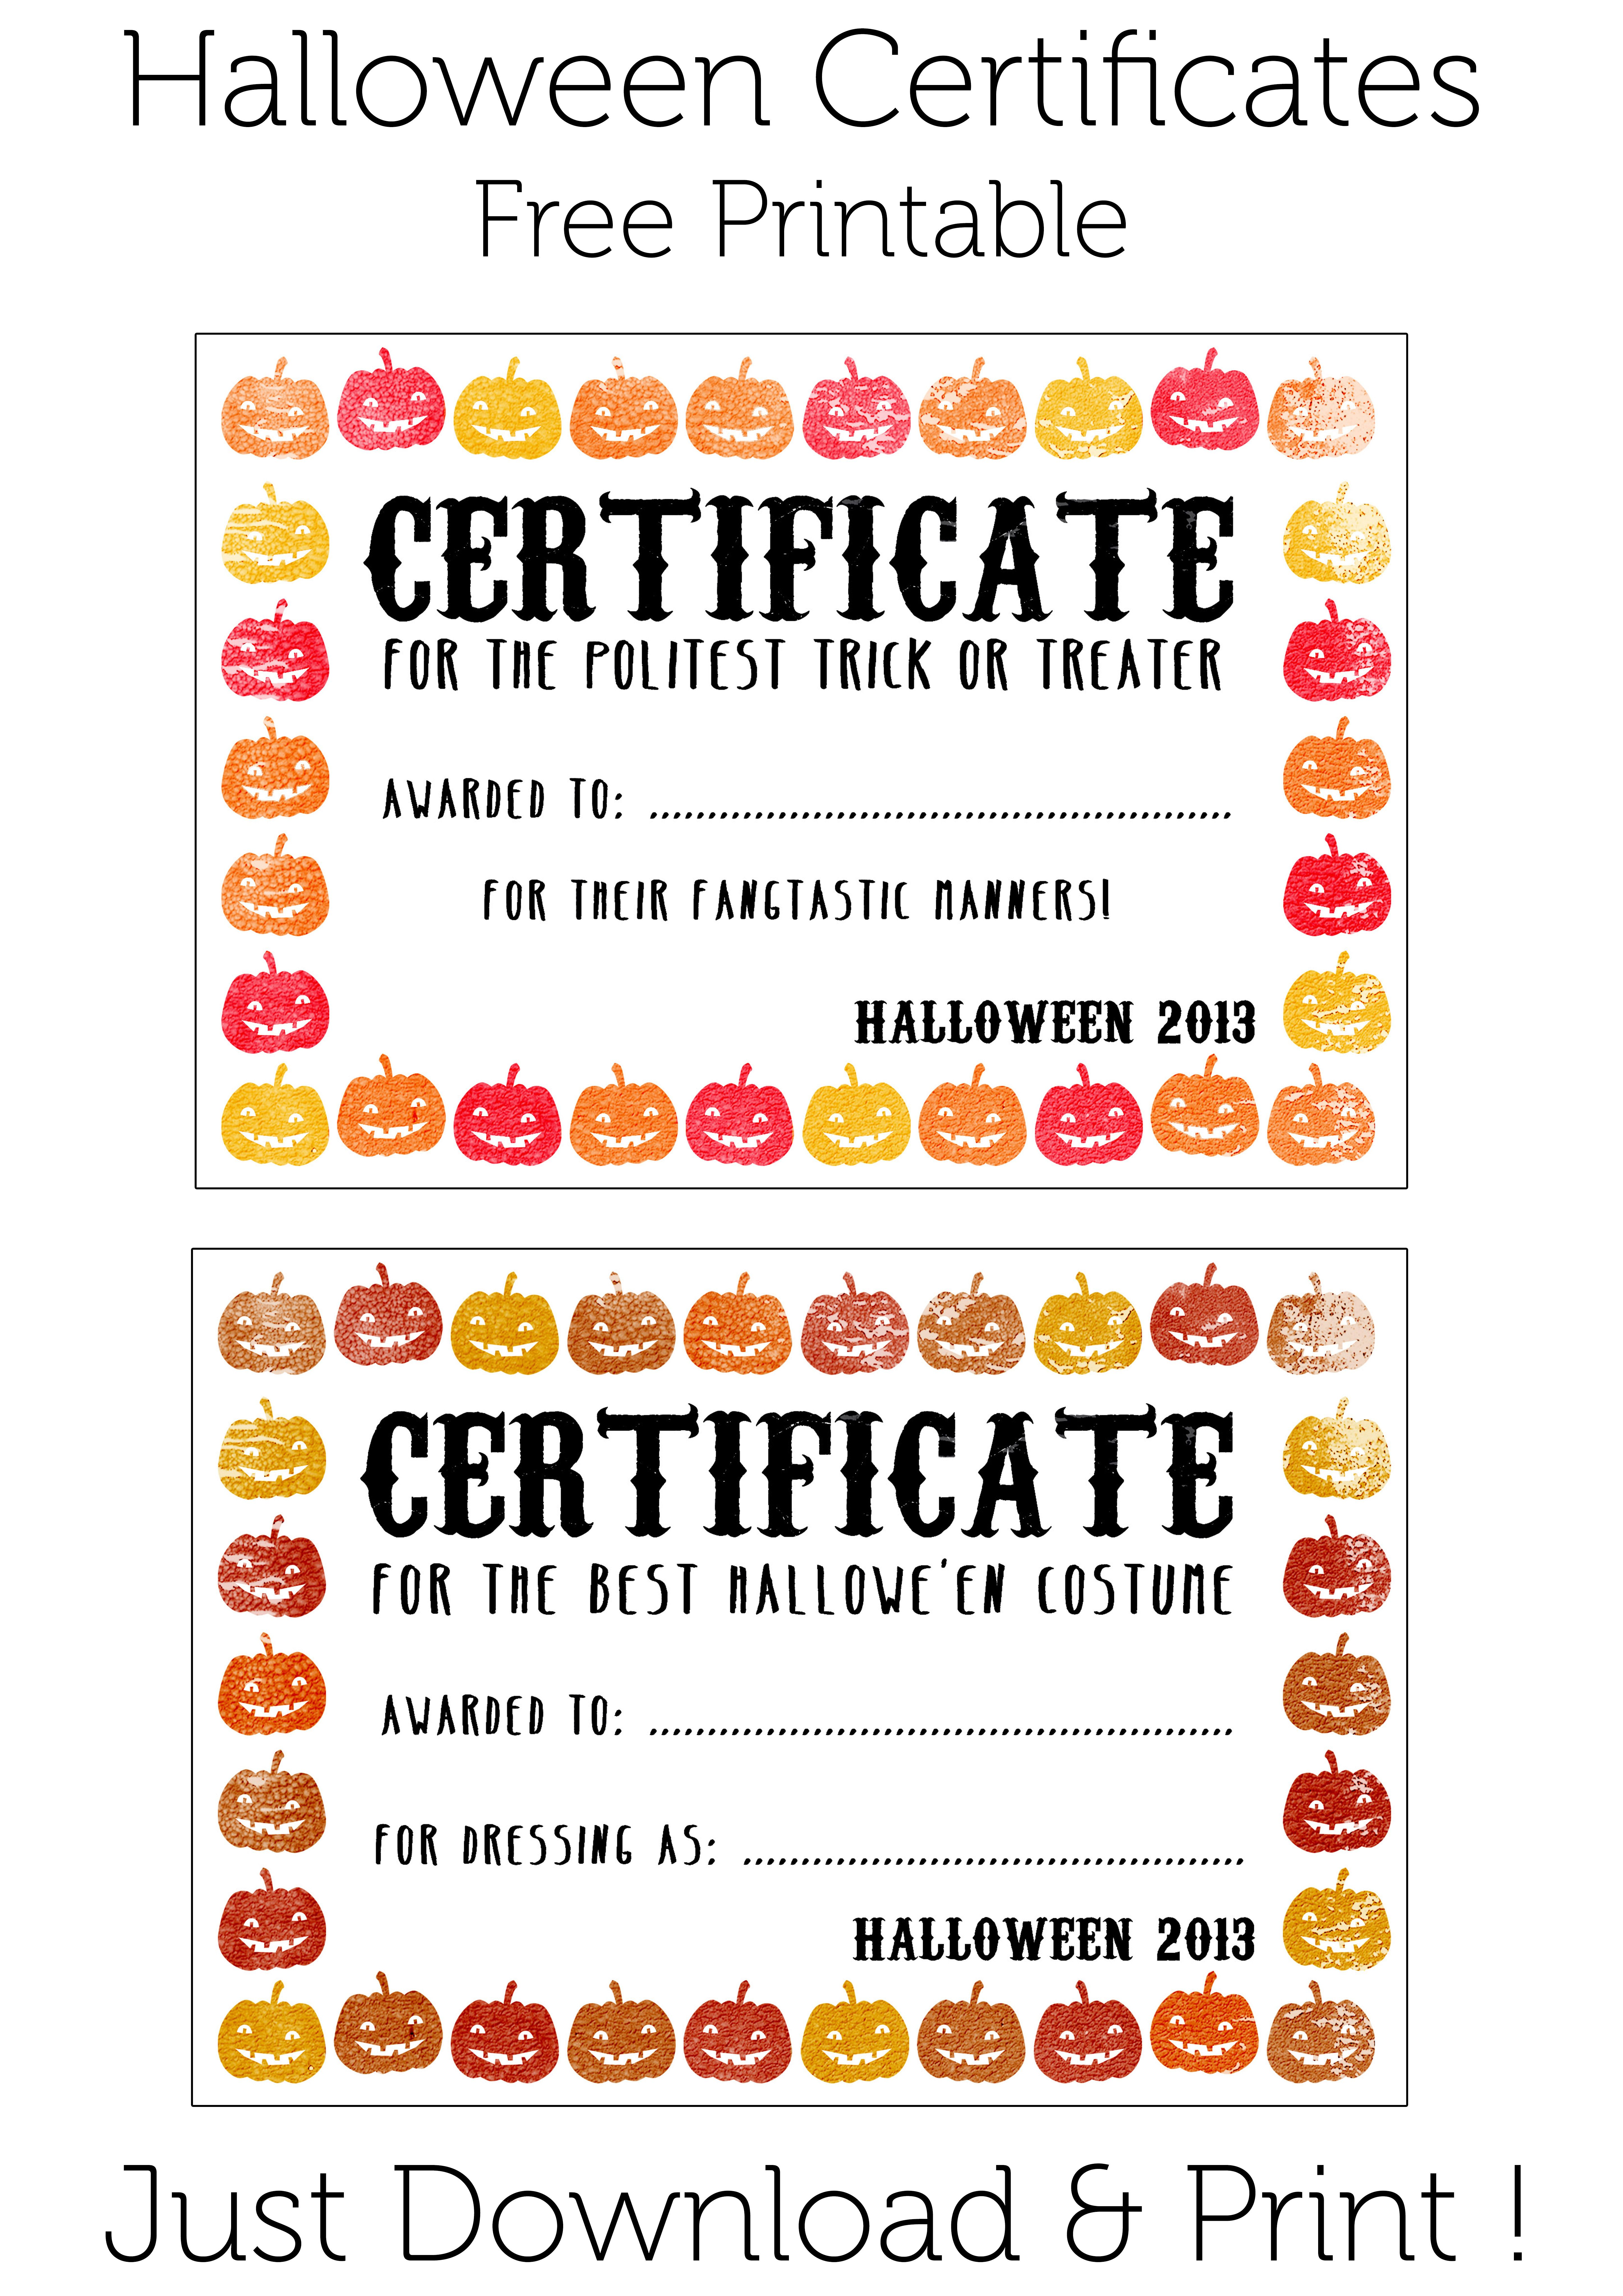 Halloween Certificates Give Them Out To Trick O Treaters As Well